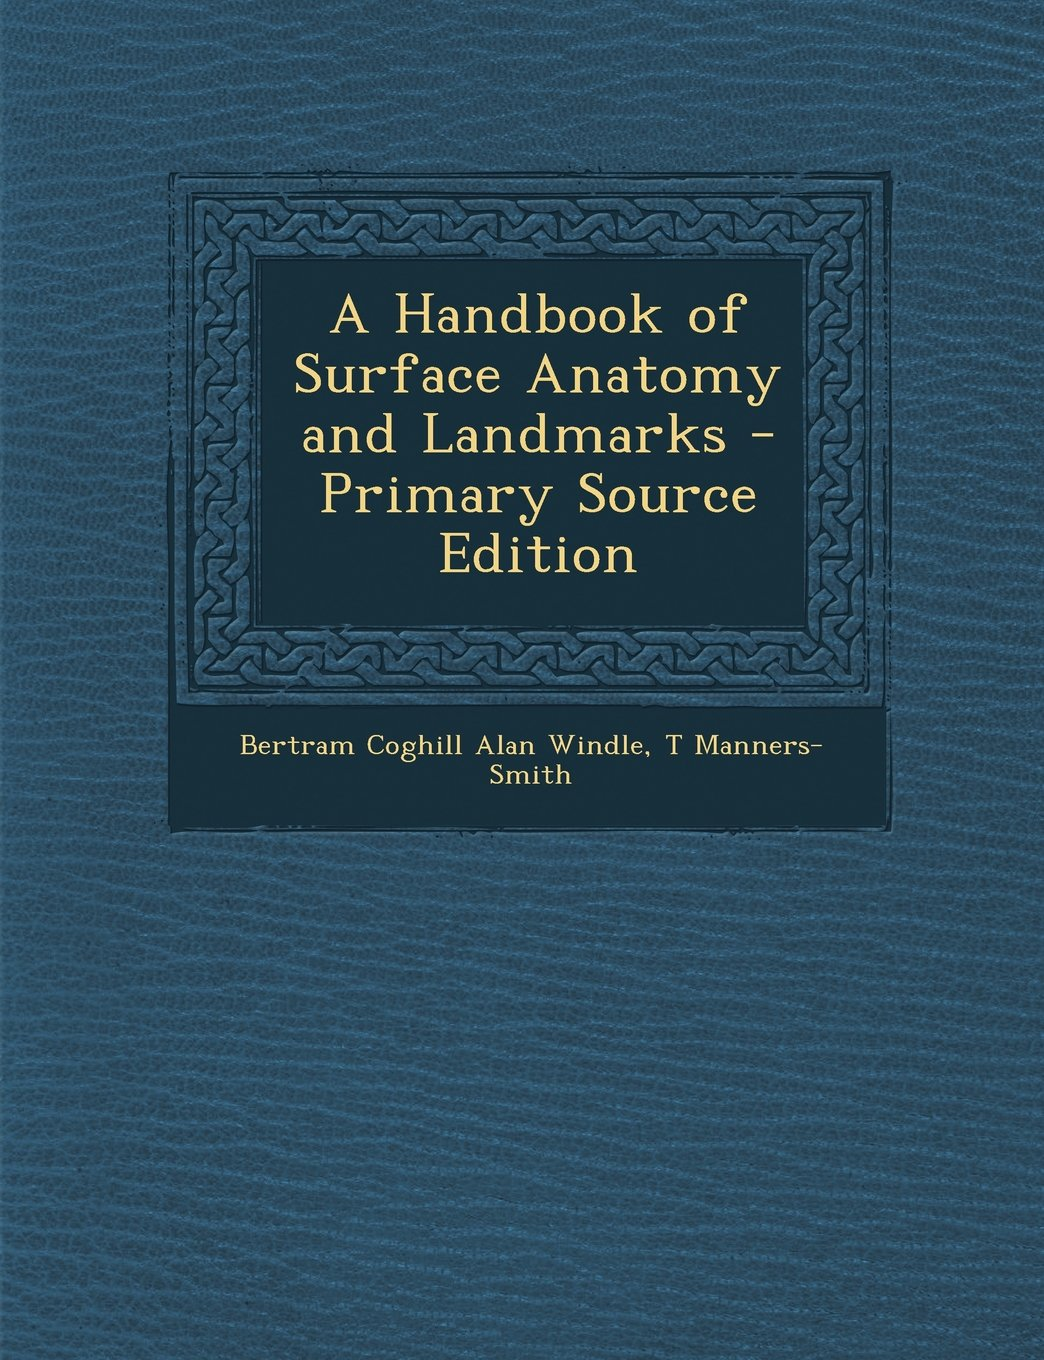 A Handbook of Surface Anatomy and Landmarks - Primary Source Edition ...